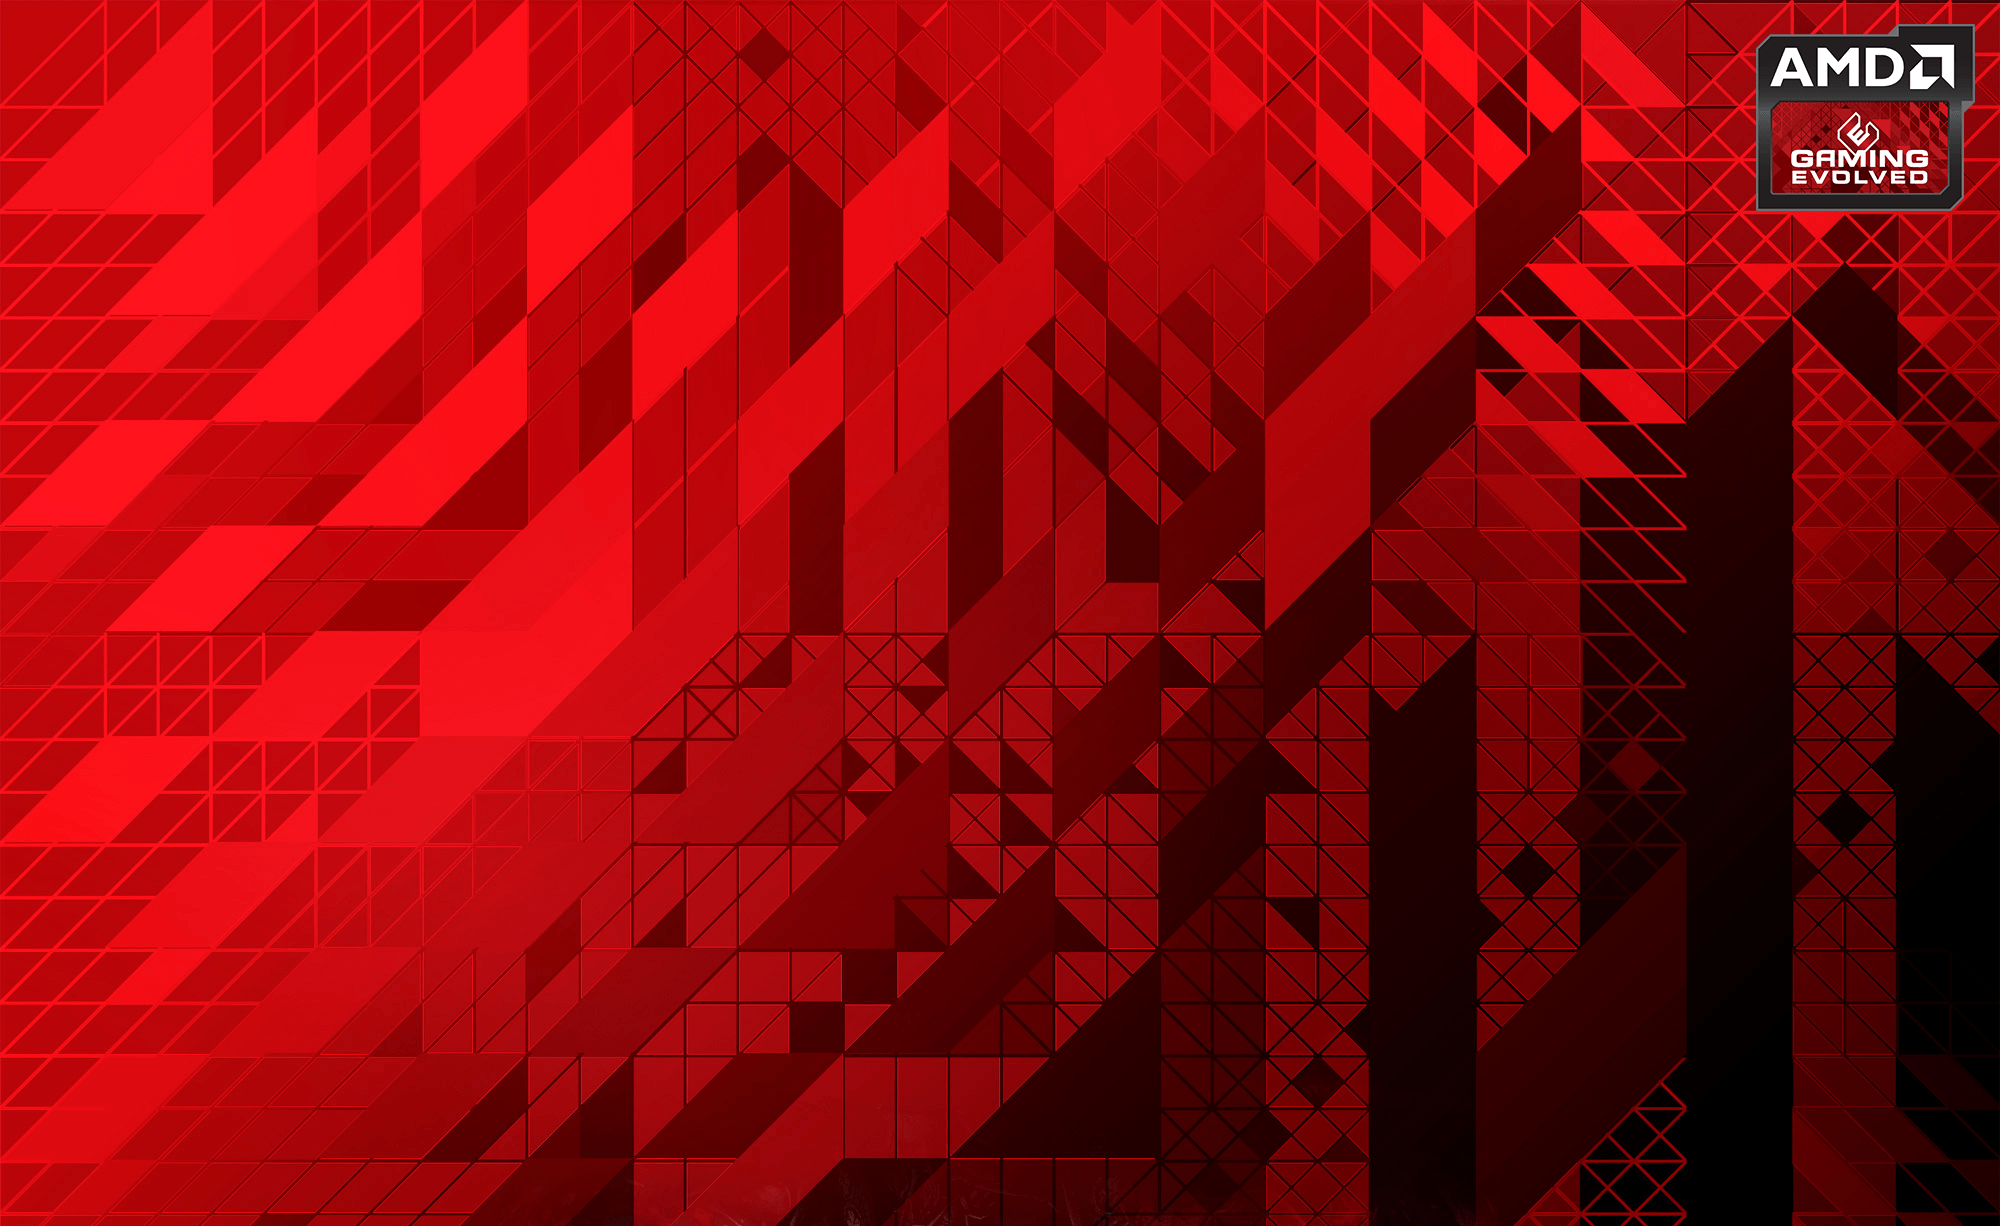 Red Gaming Wallpapers - Wallpaper Cave